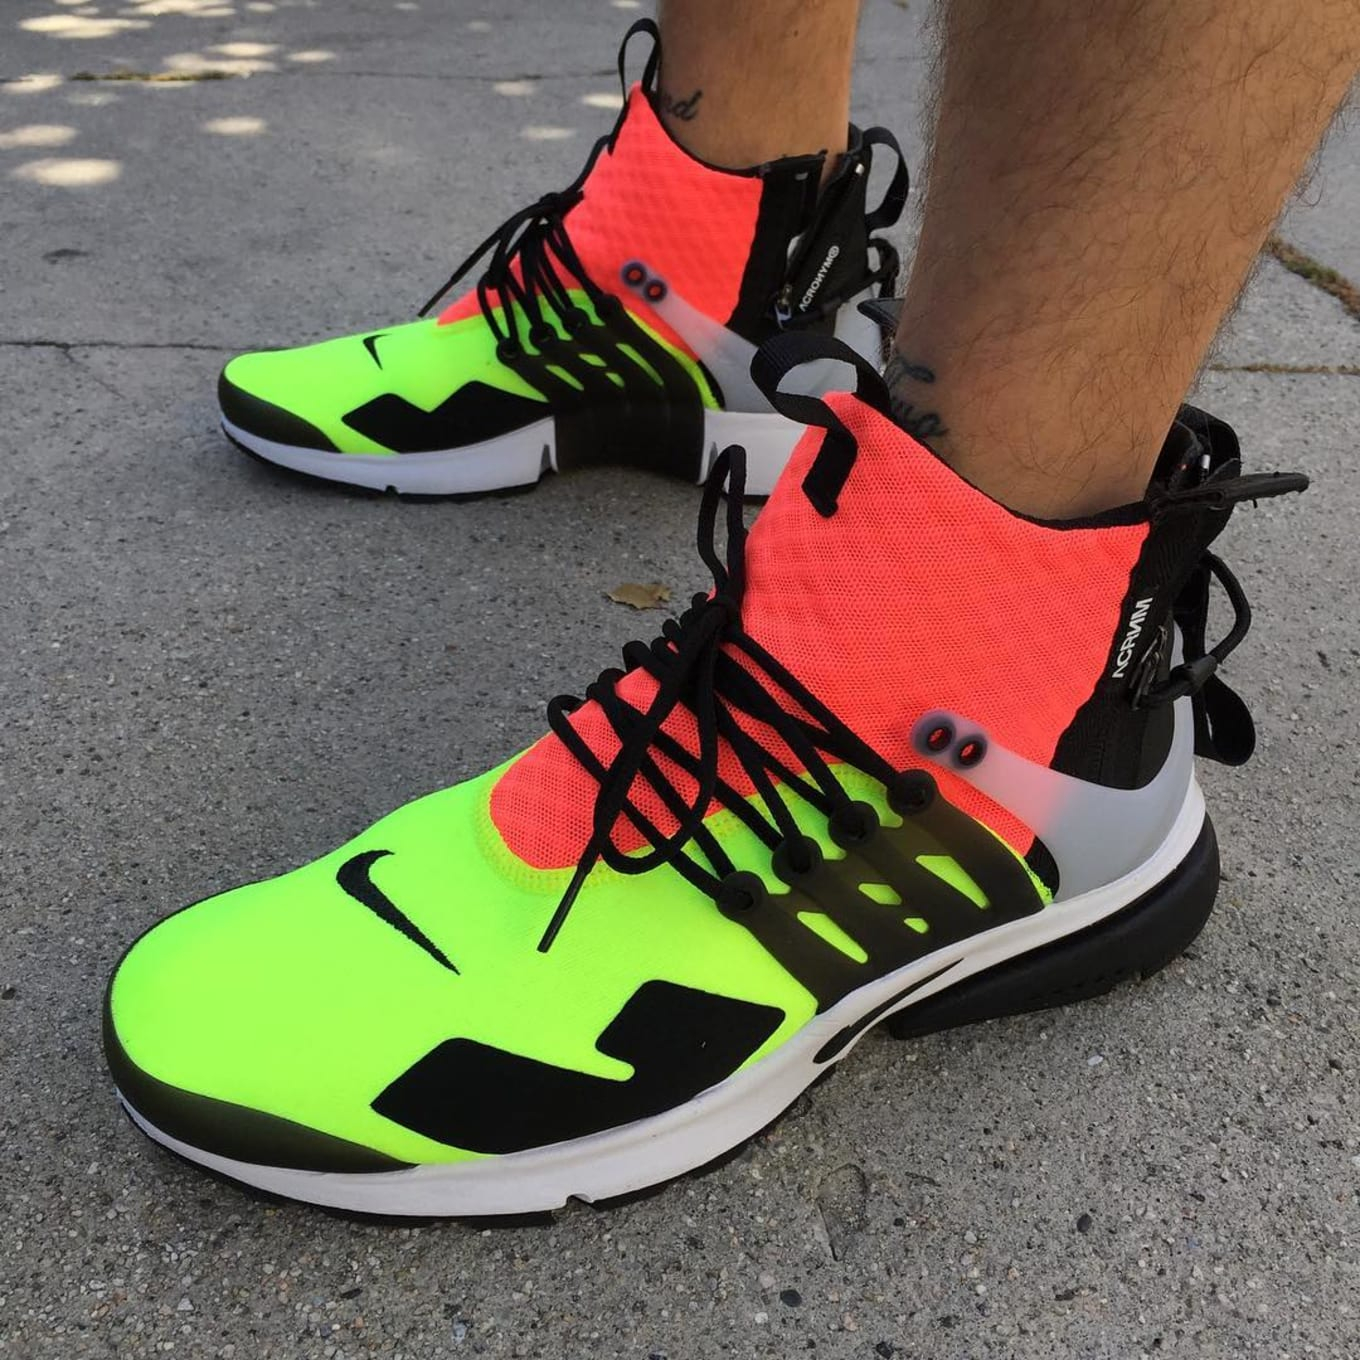 detailed look 854ab 29637 ACRONYM x Nike Air Presto On-Foot